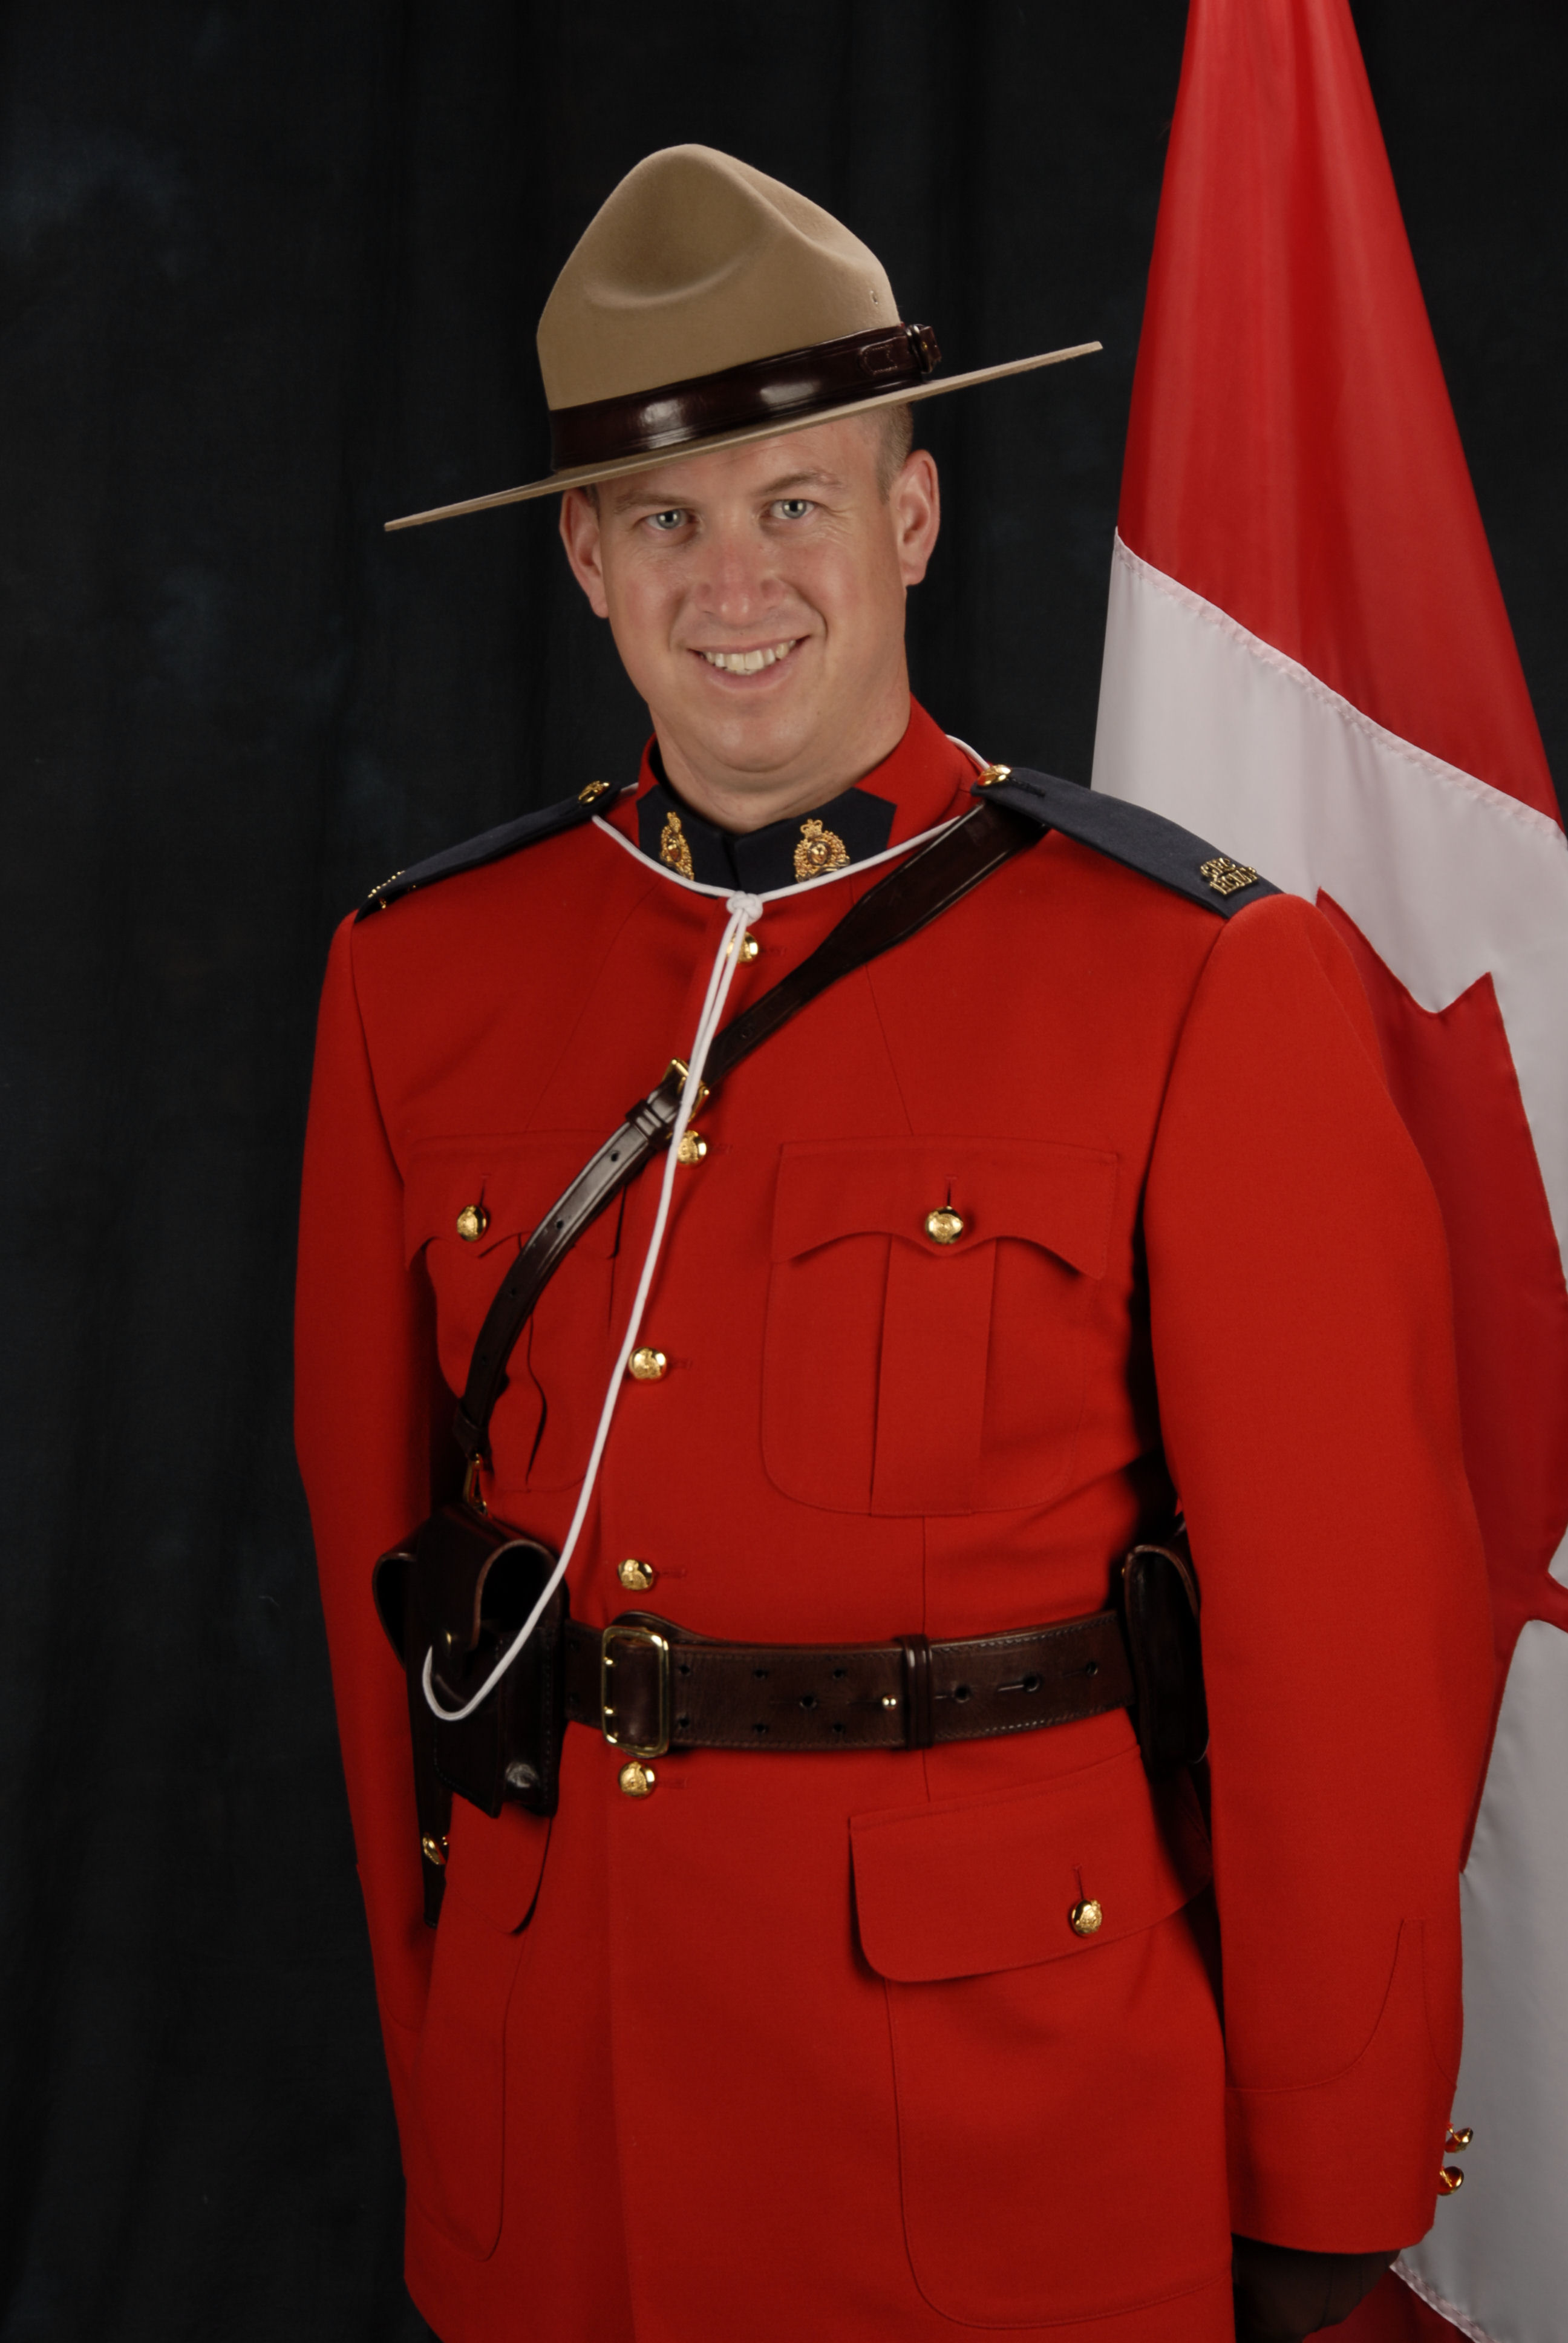 Photo of DEREK WILLIAM HENRY PINEO– Cst. PINEO's happier official RCMP photograph. This is how we, his friends and troop mates, remember him. He always had a way to make everyone around him smile and laugh.